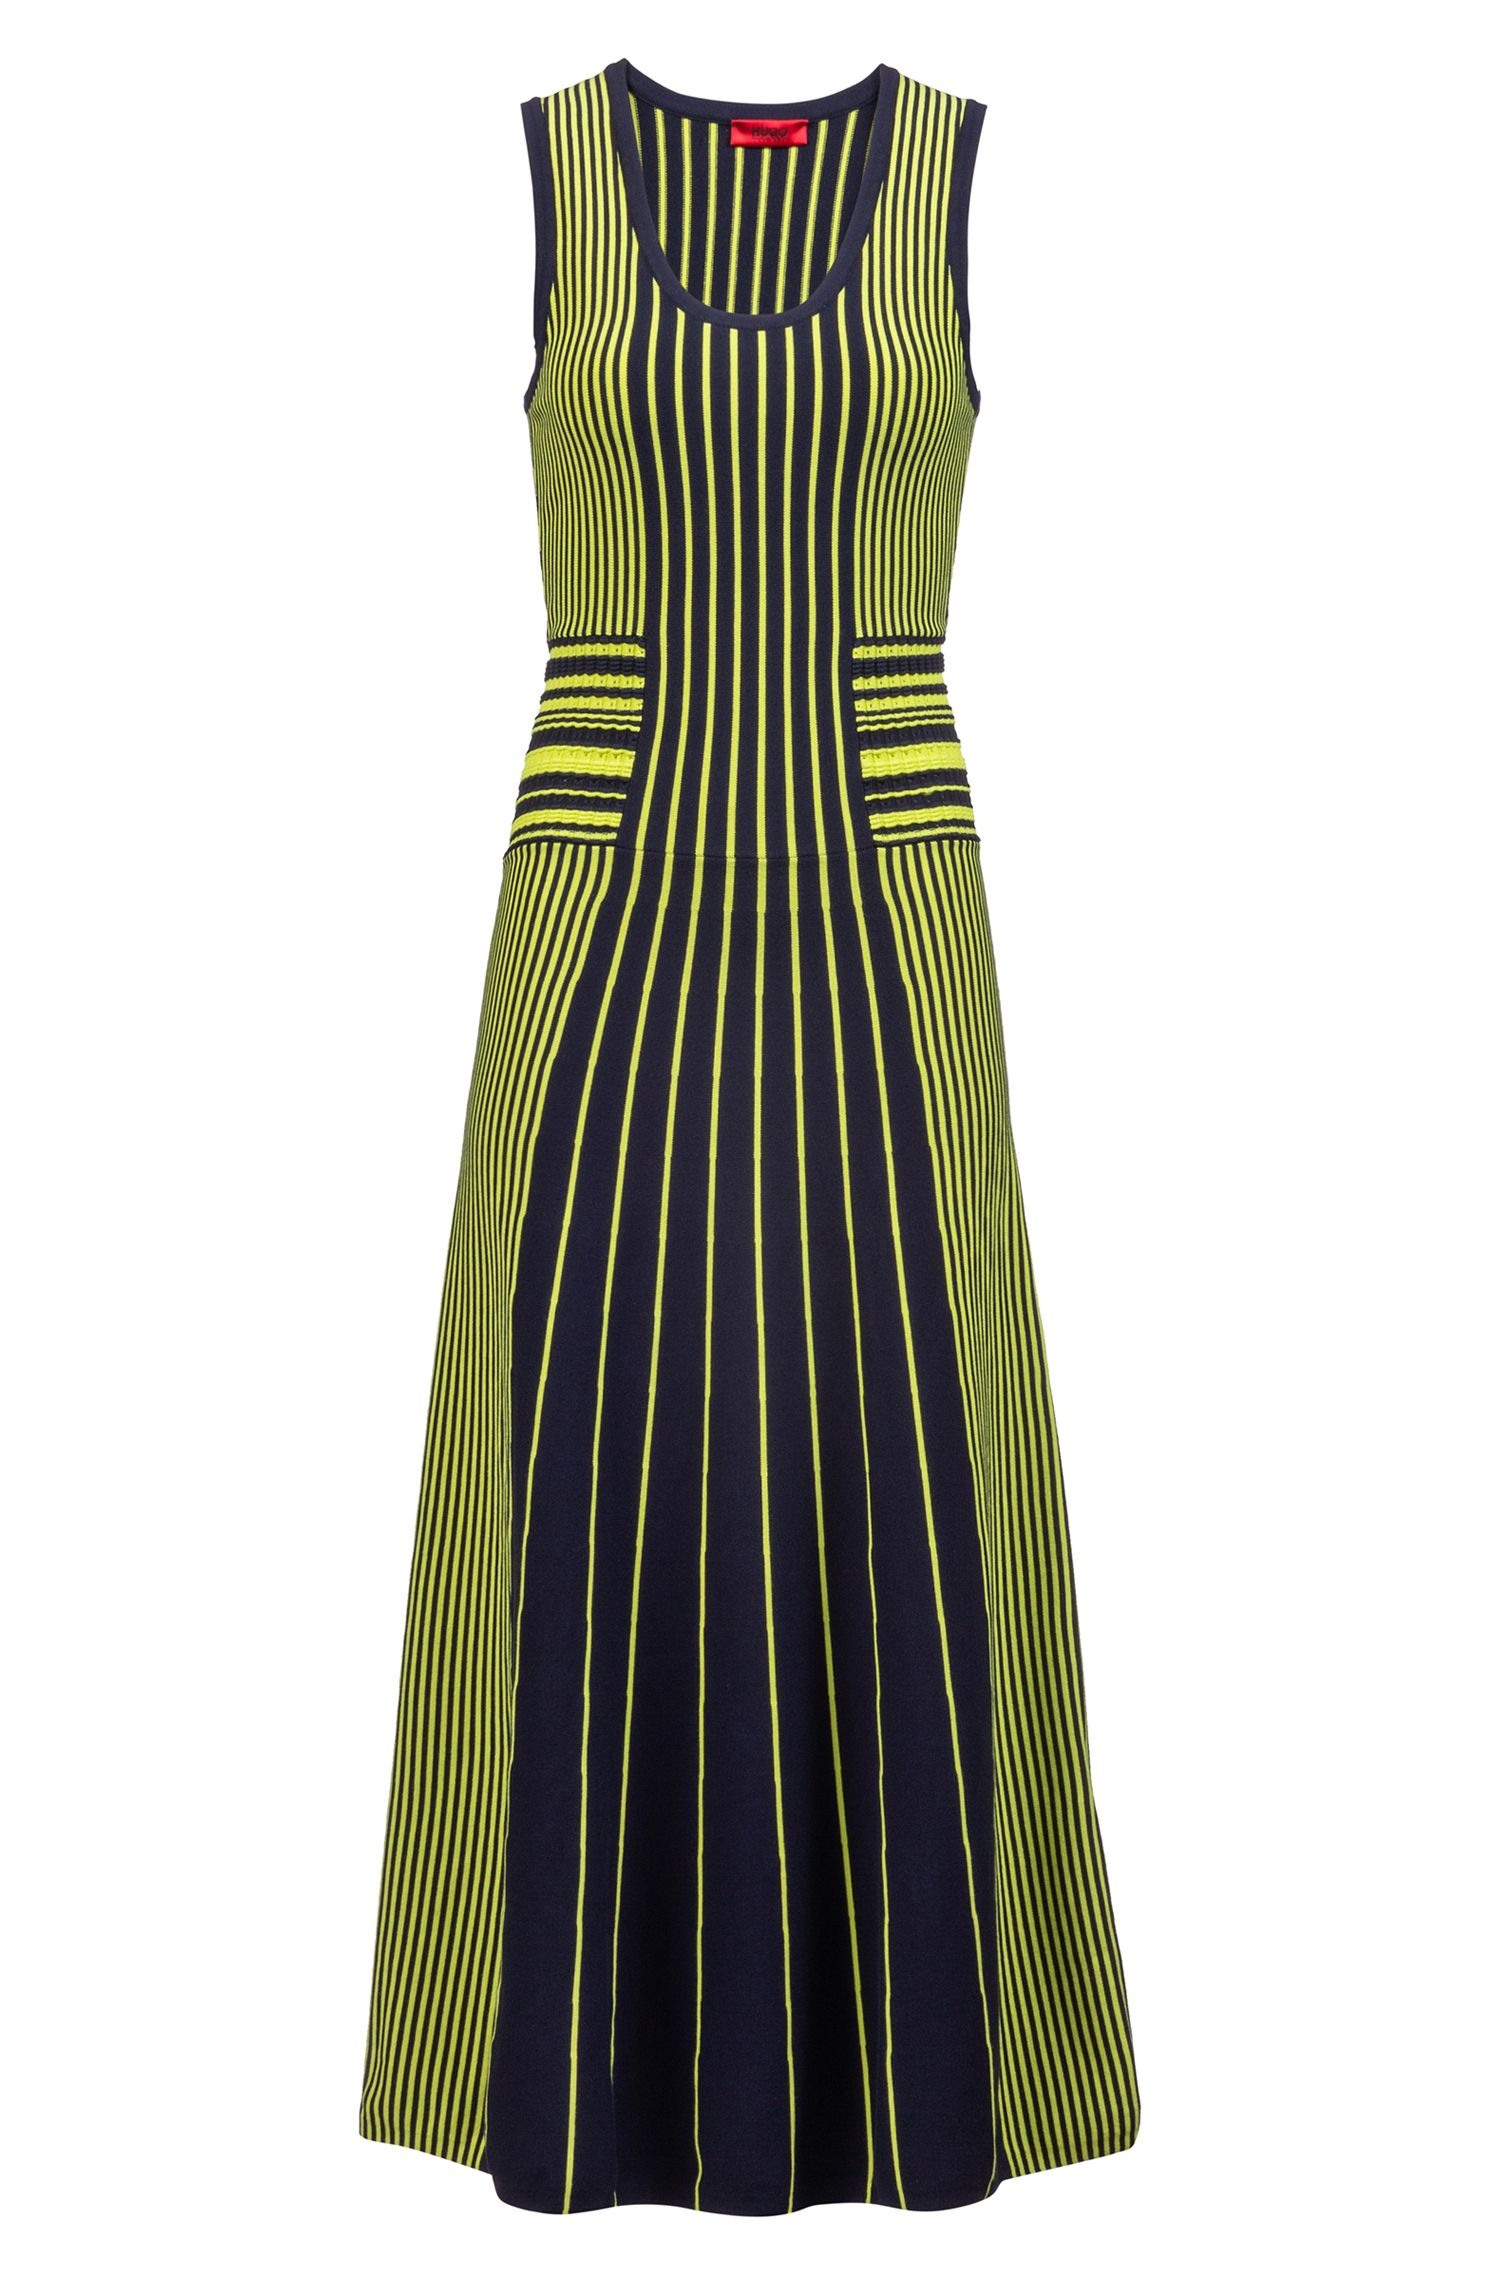 Sleeveless knitted dress with mixed stripes, Patterned